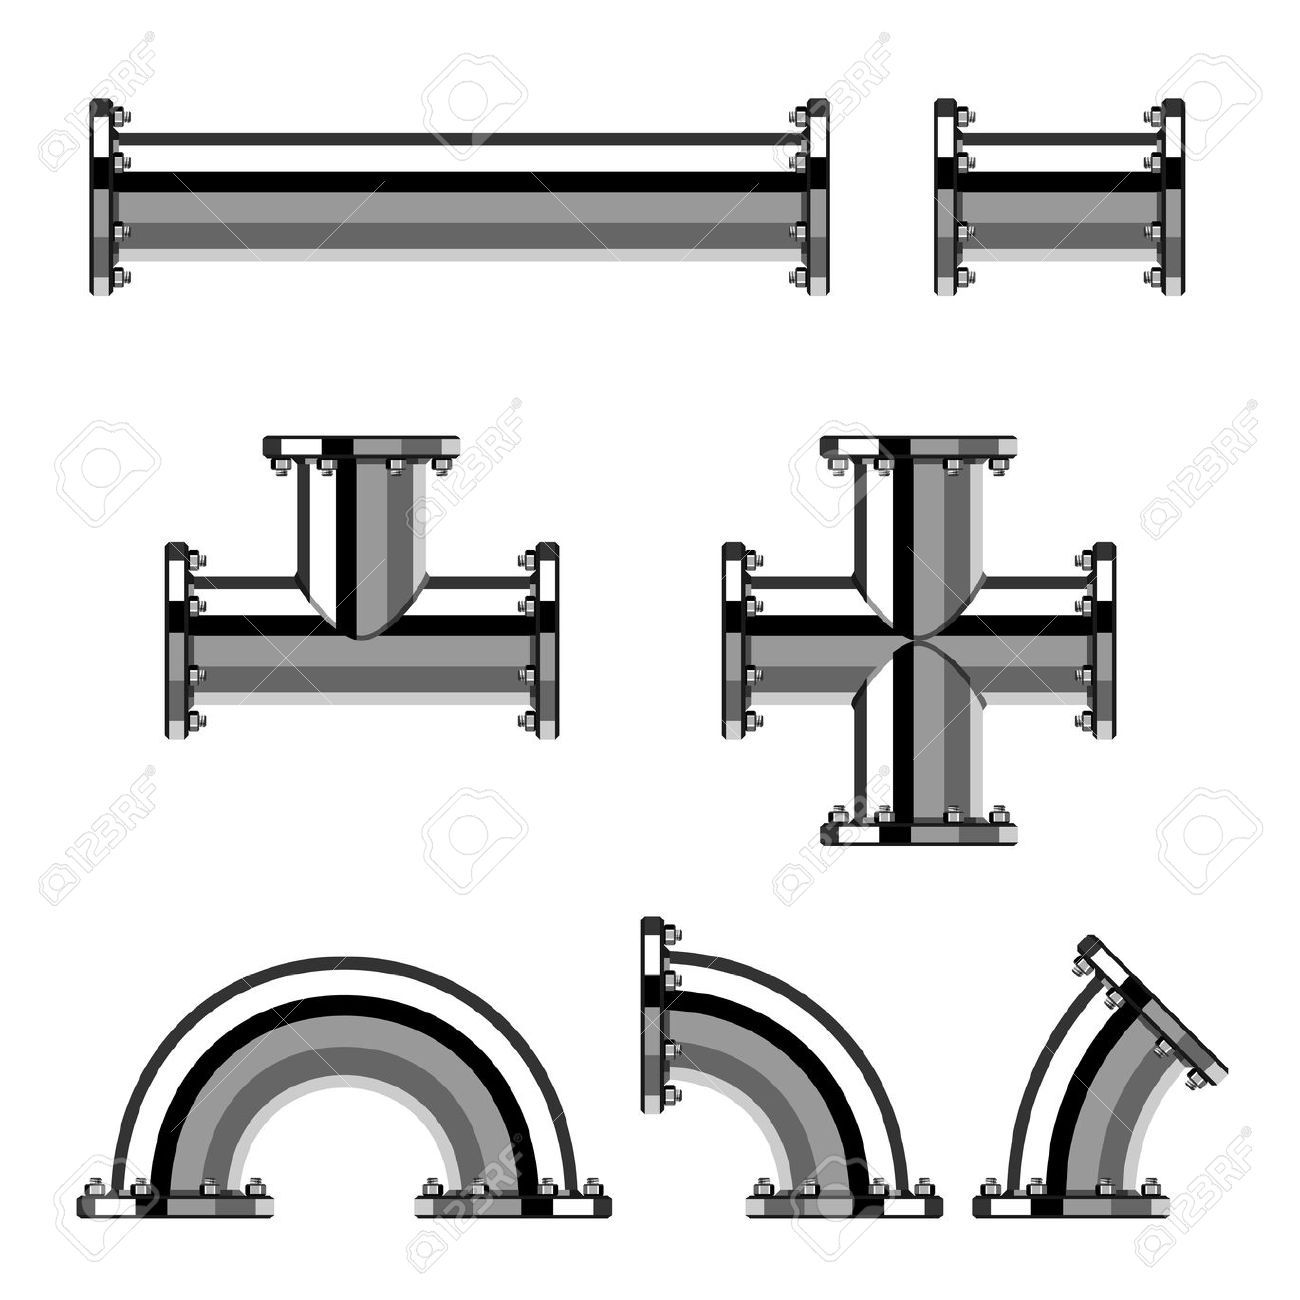 1300x1300 Pipes Drawing Free Download